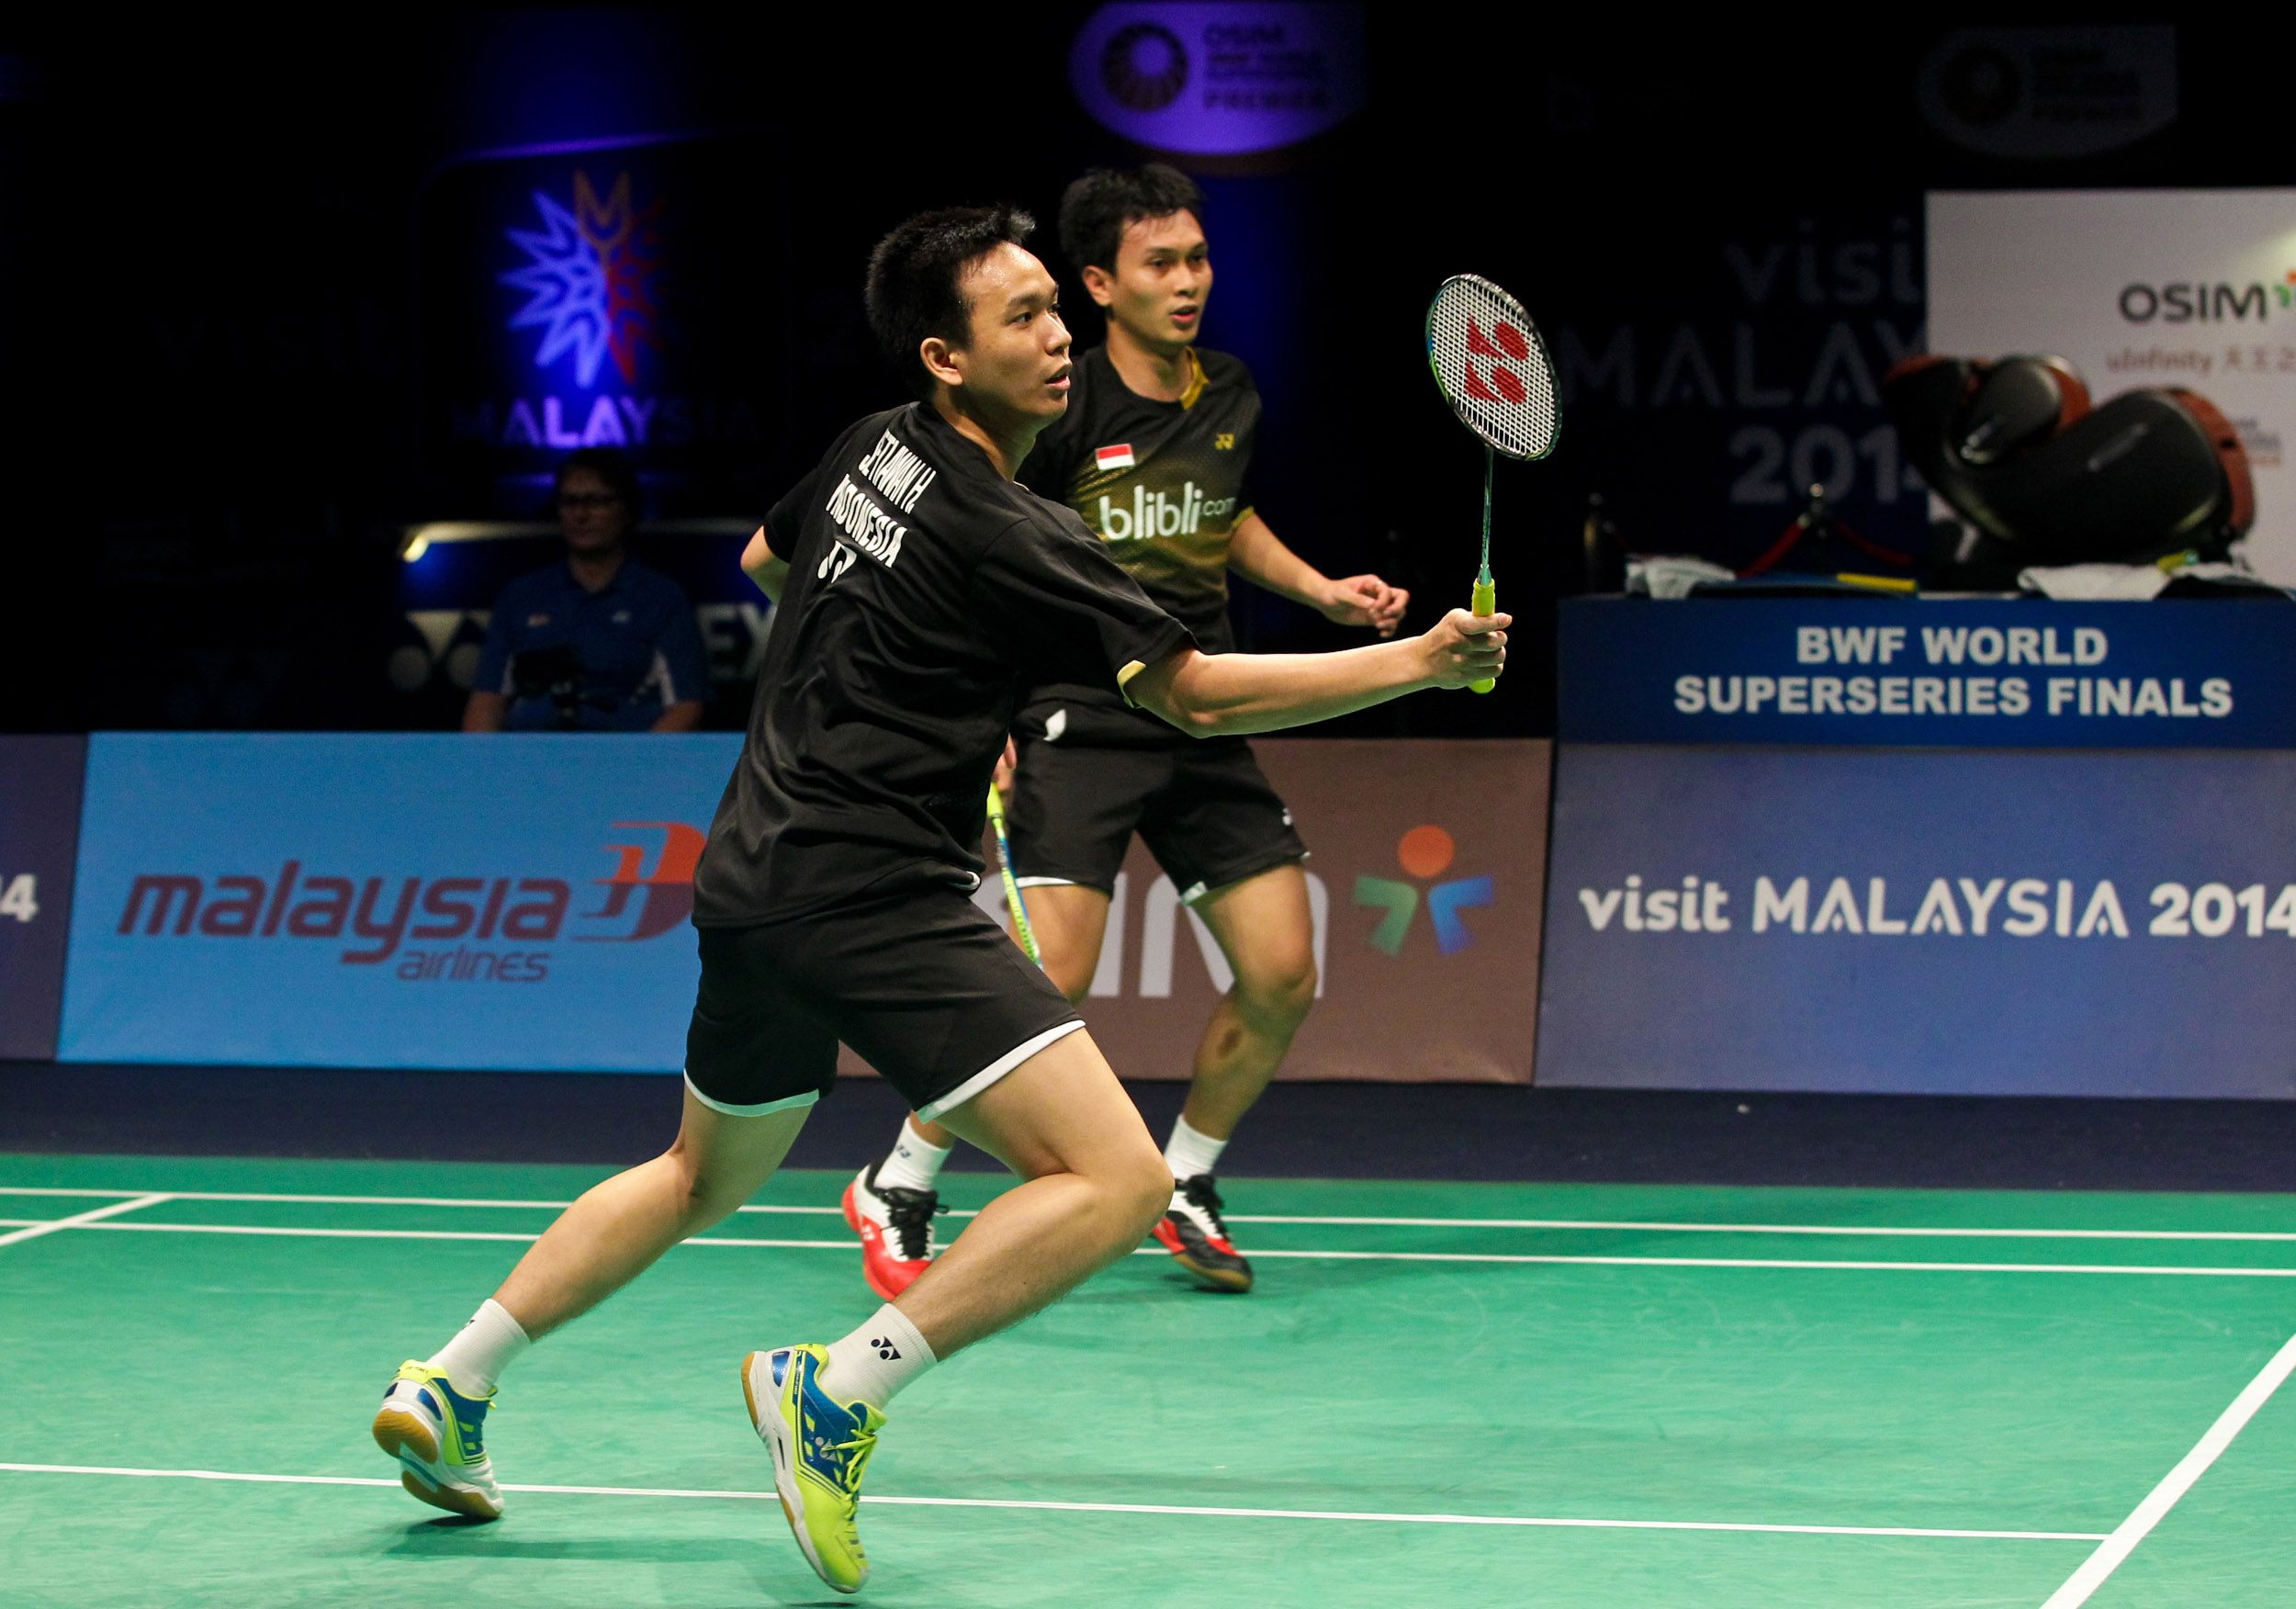 Lee Chong Wei Vtzf Shb01ltd And Tommy Sugiarto Arc11 At The Bwf World Superseries Finals